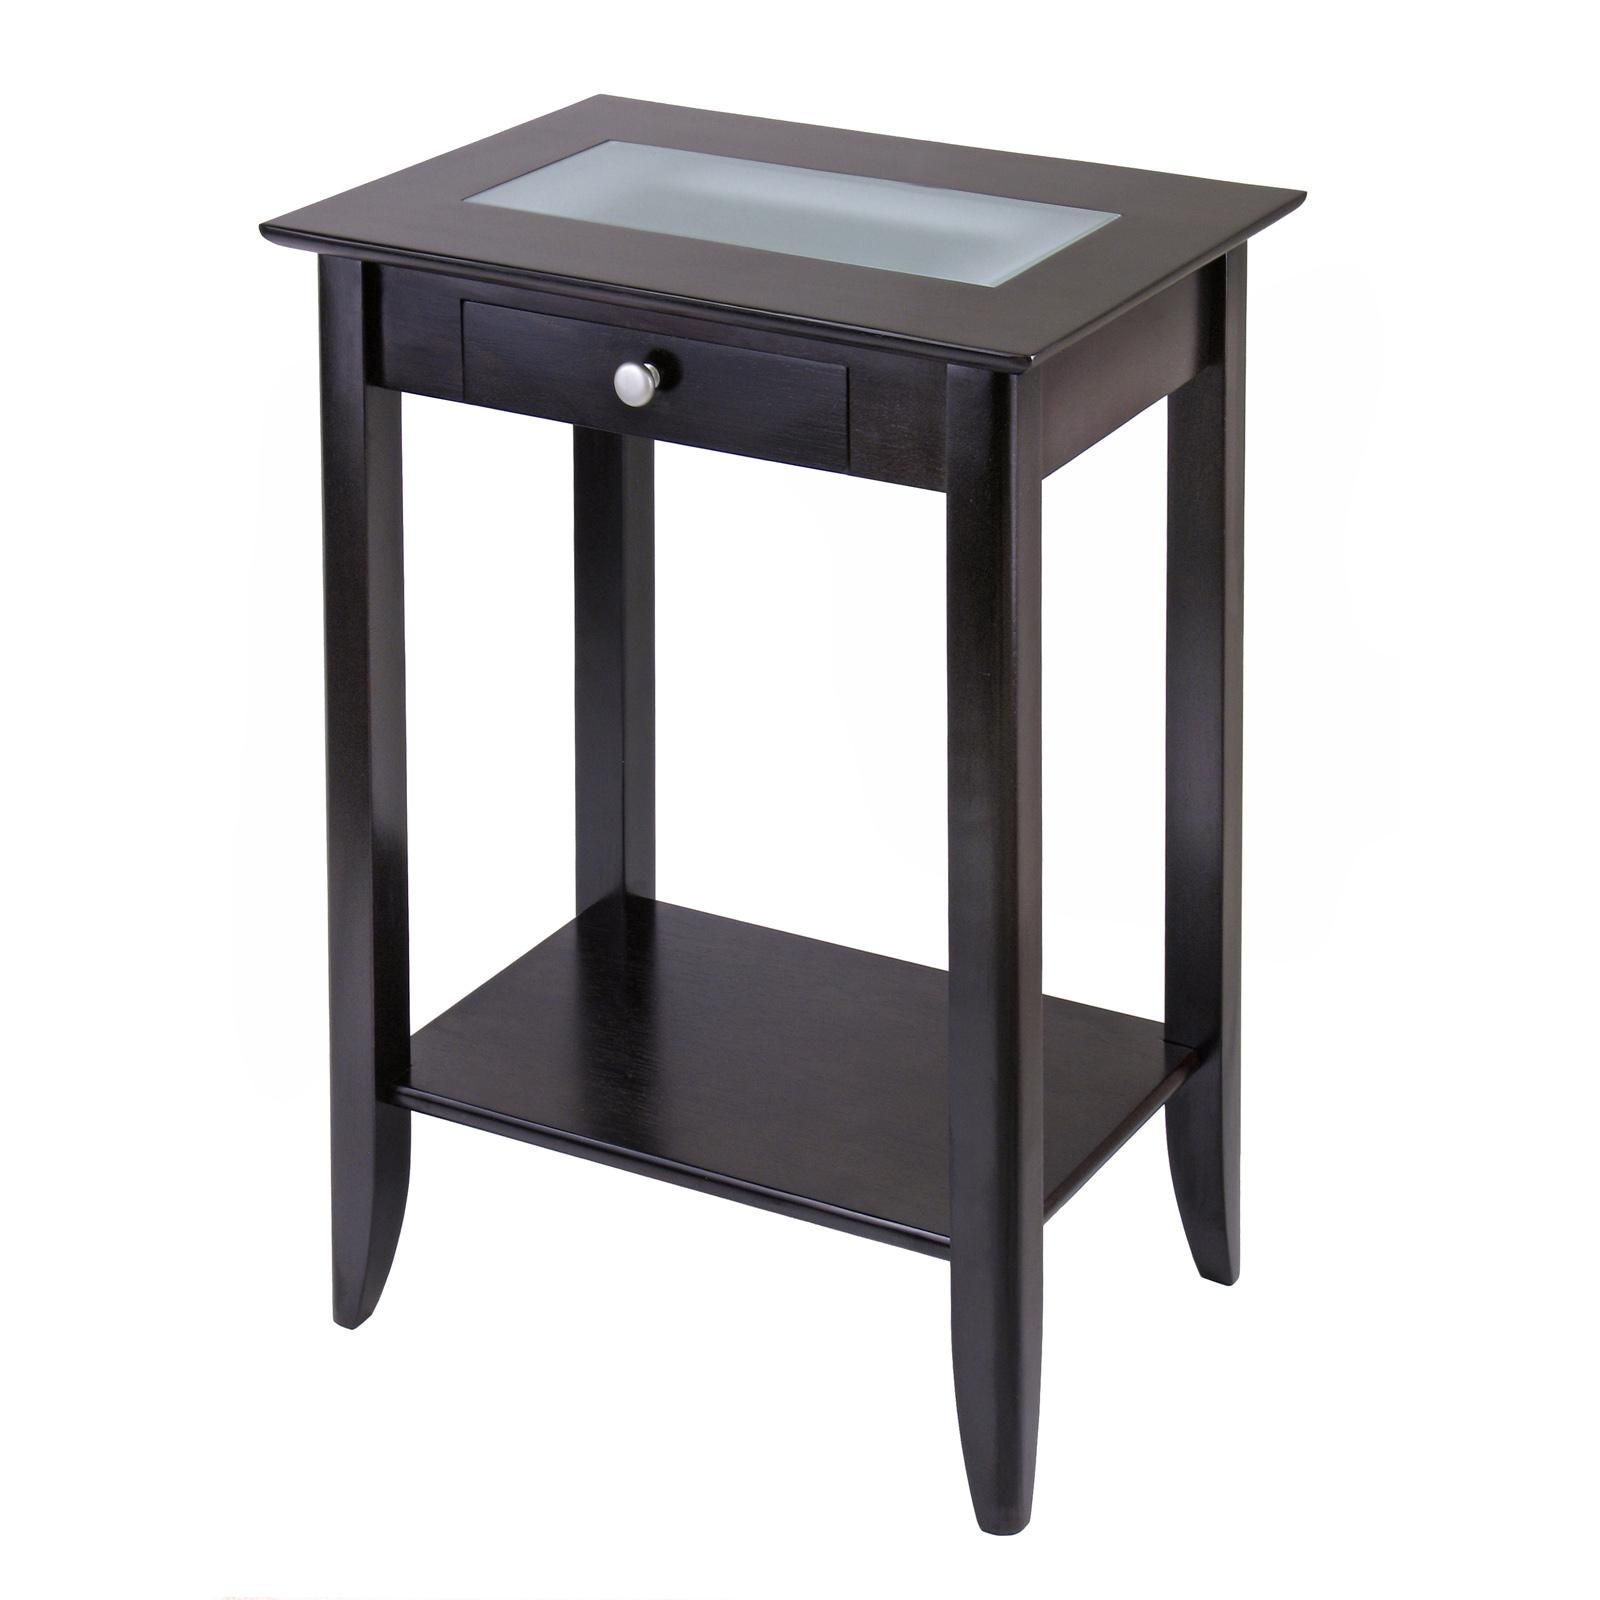 winsome wood syrah accent table with forsted glass shelf drrao small tiffany lamps round antique drawer patio cover modern contemporary coffee scandinavian side vanity unit basin